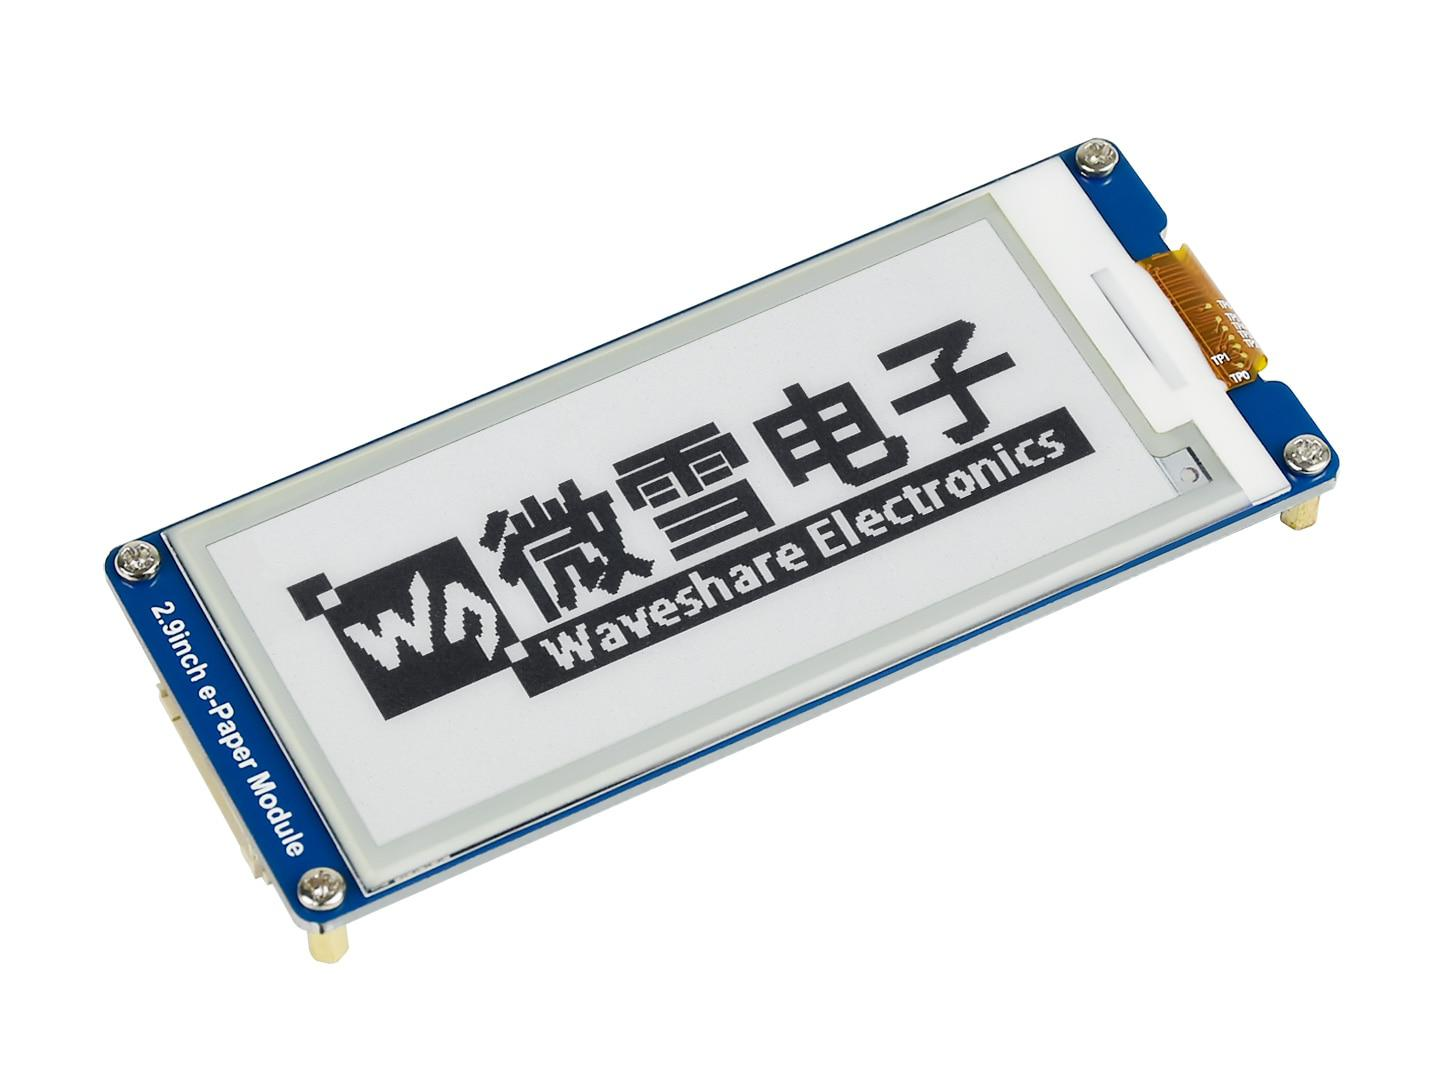 2.9inch e-Paper Module.296x128,2.9''E-Ink display,SPI interface,For Raspberry Pi etc,Display color: black,white,